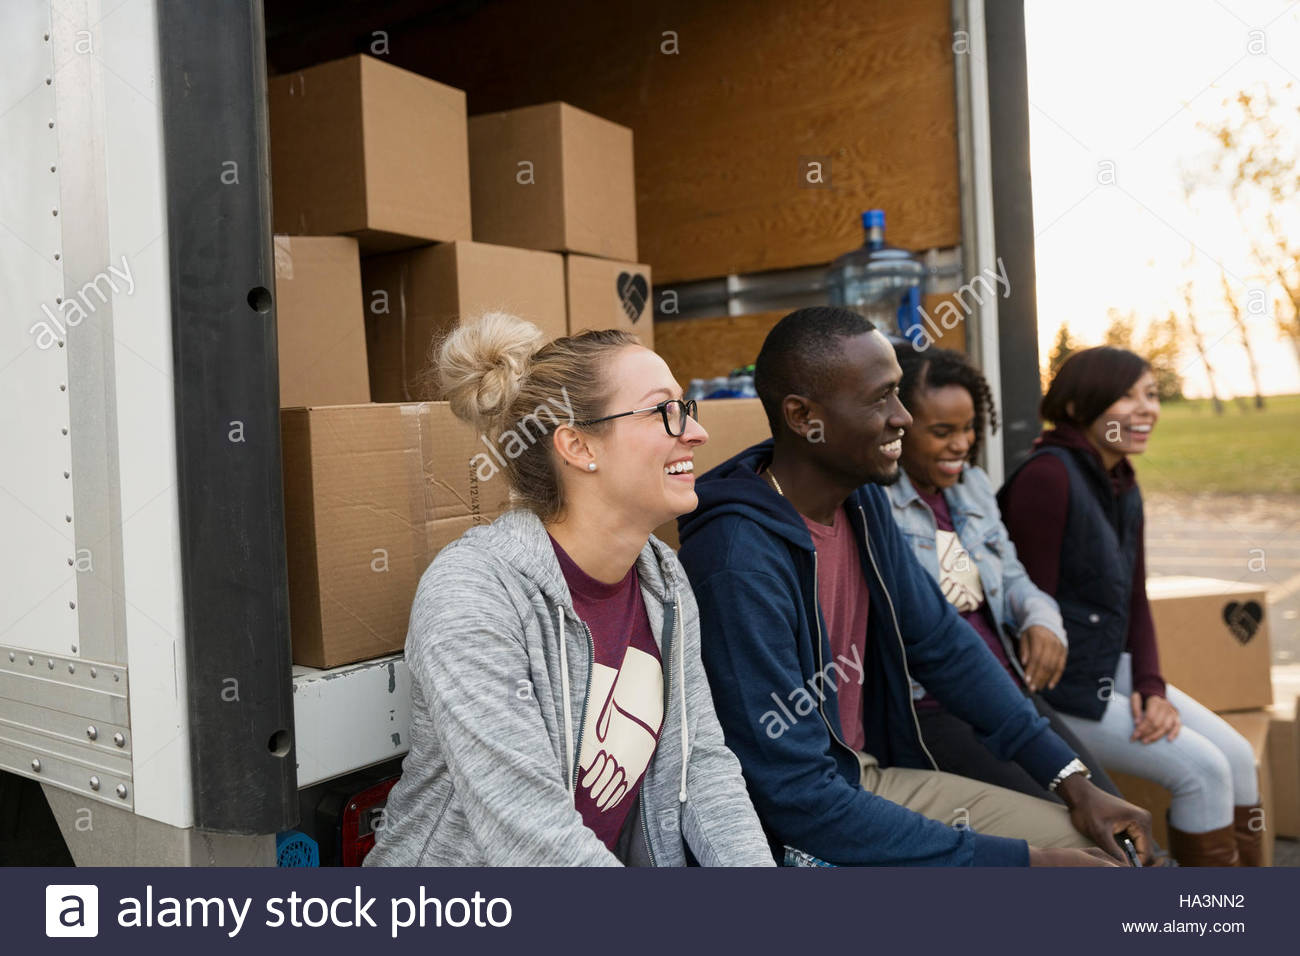 Smiling volunteers sitting at back of truck with cardboard boxes - Stock Image